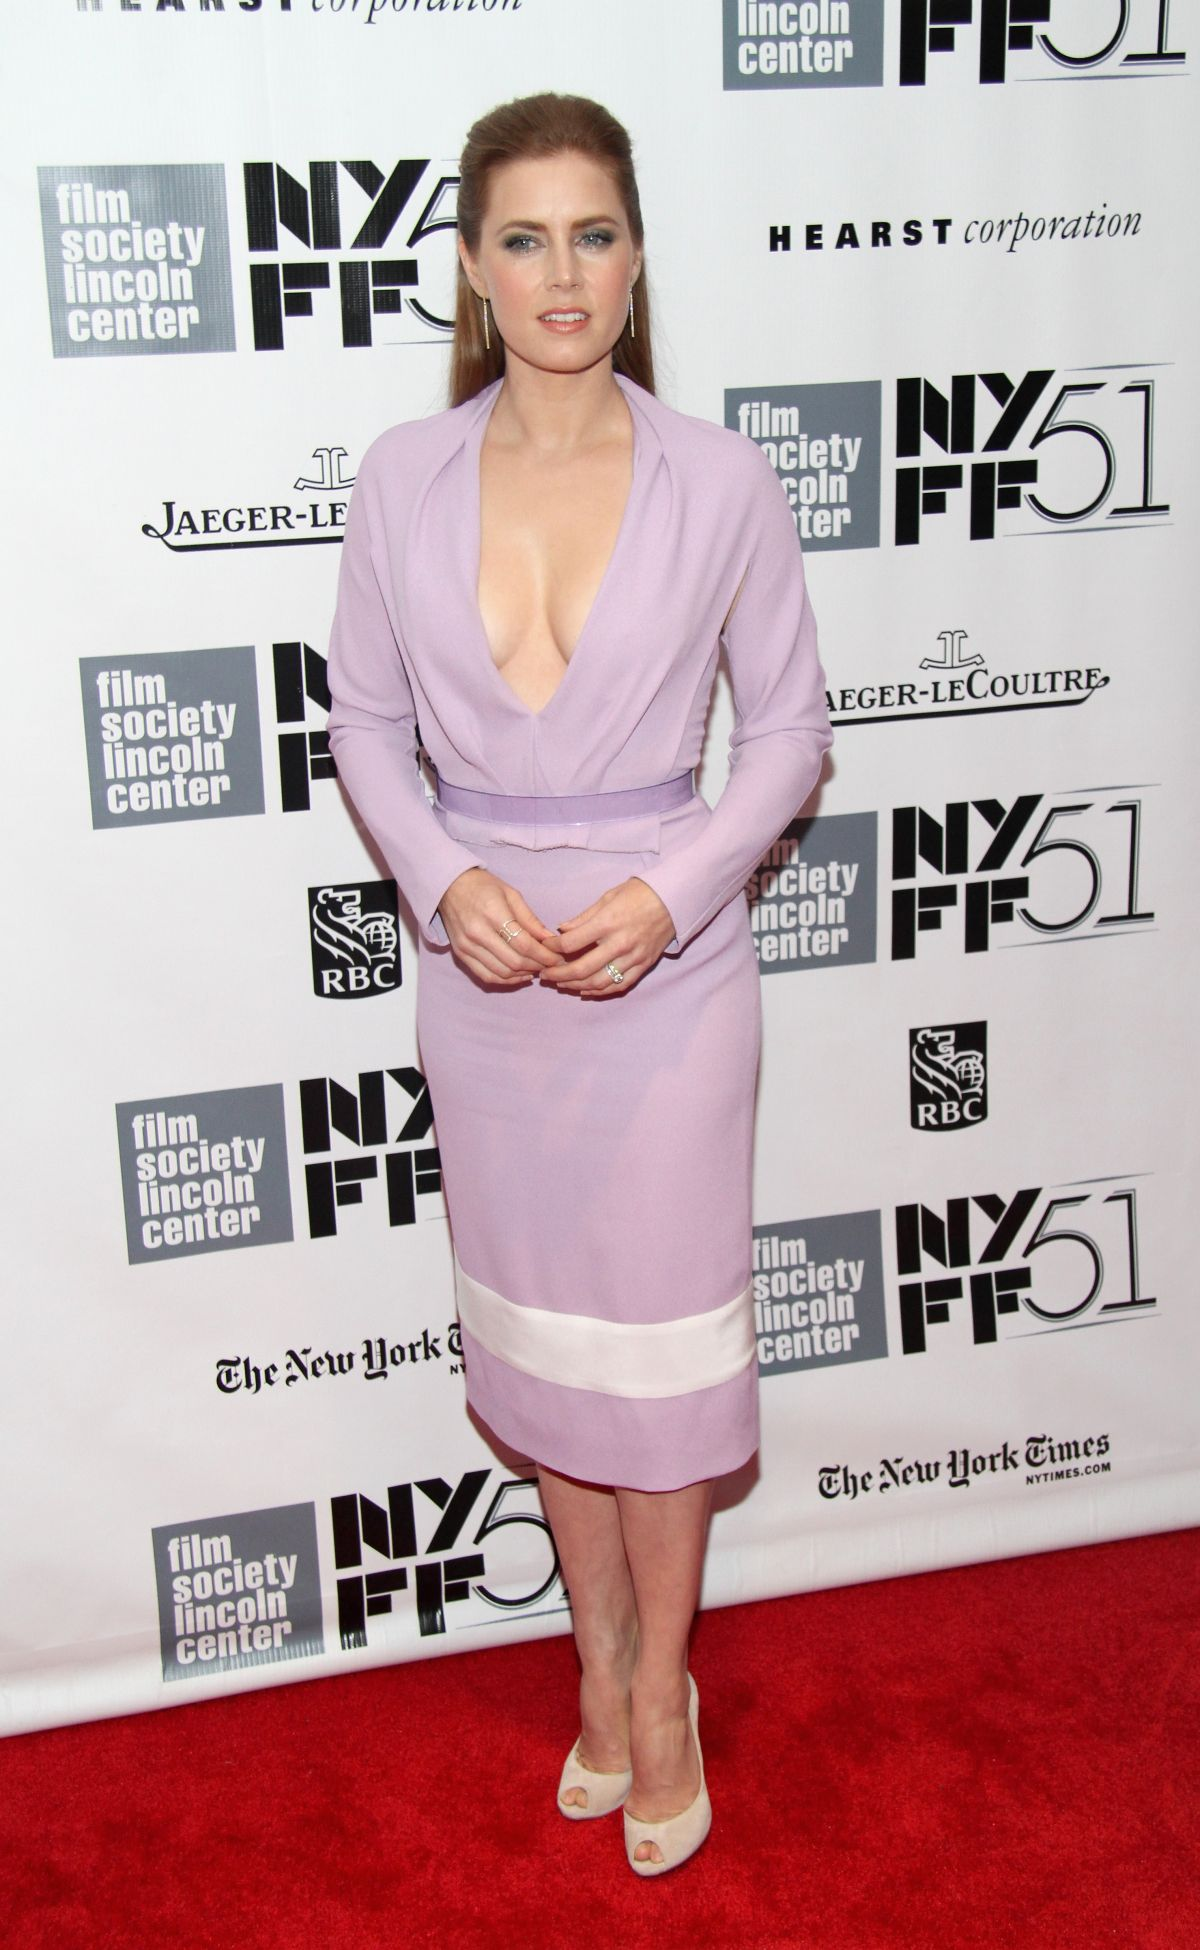 amy-adams-at-closing-night-gala-presentation-of-her-at-new-york-film-festival_13.jpg - 246.21 KB